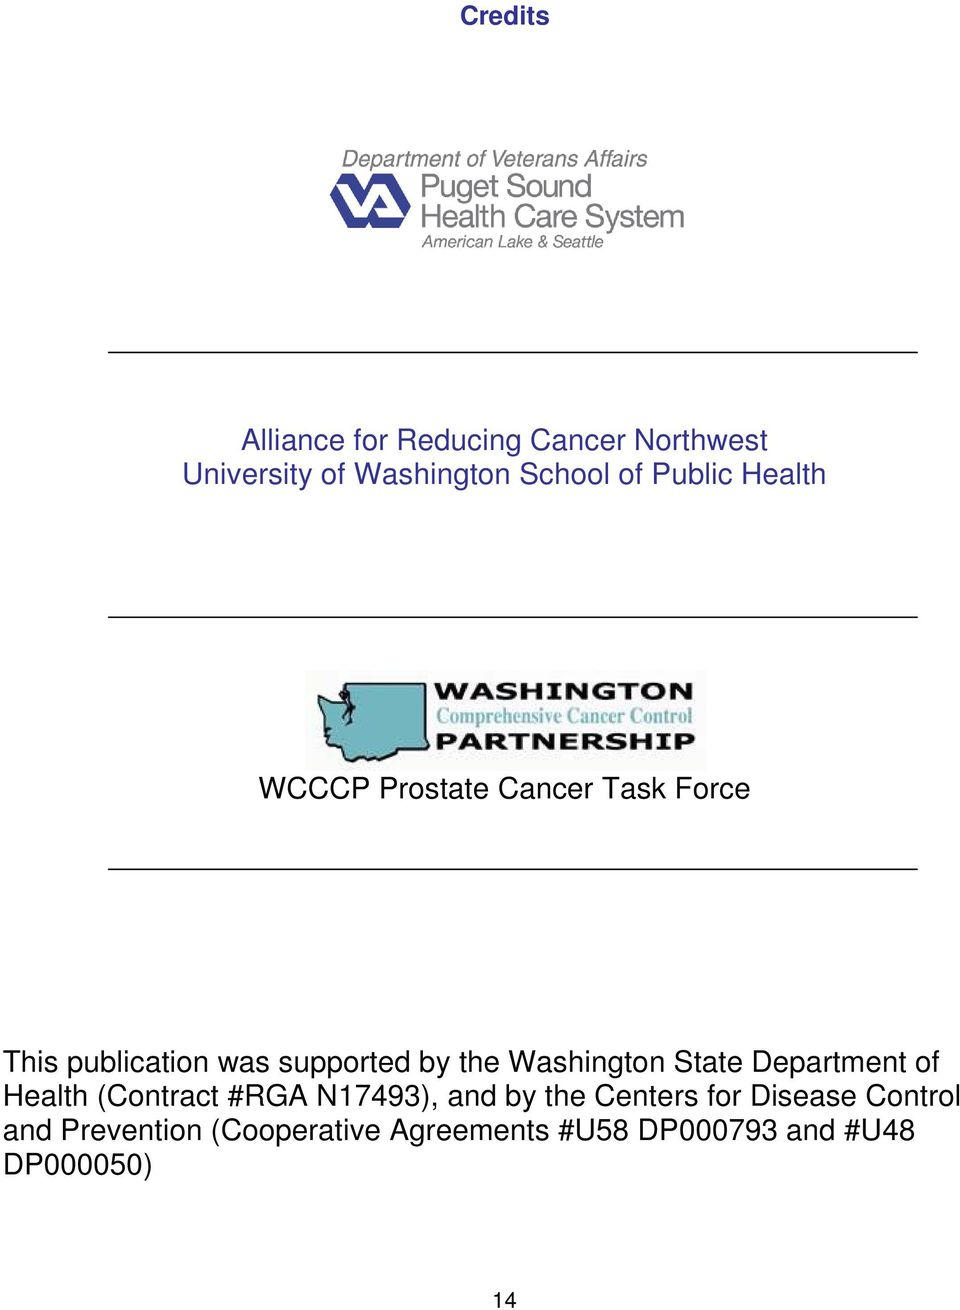 Washington State Department of Health (Contract #RGA N17493), and by the Centers for